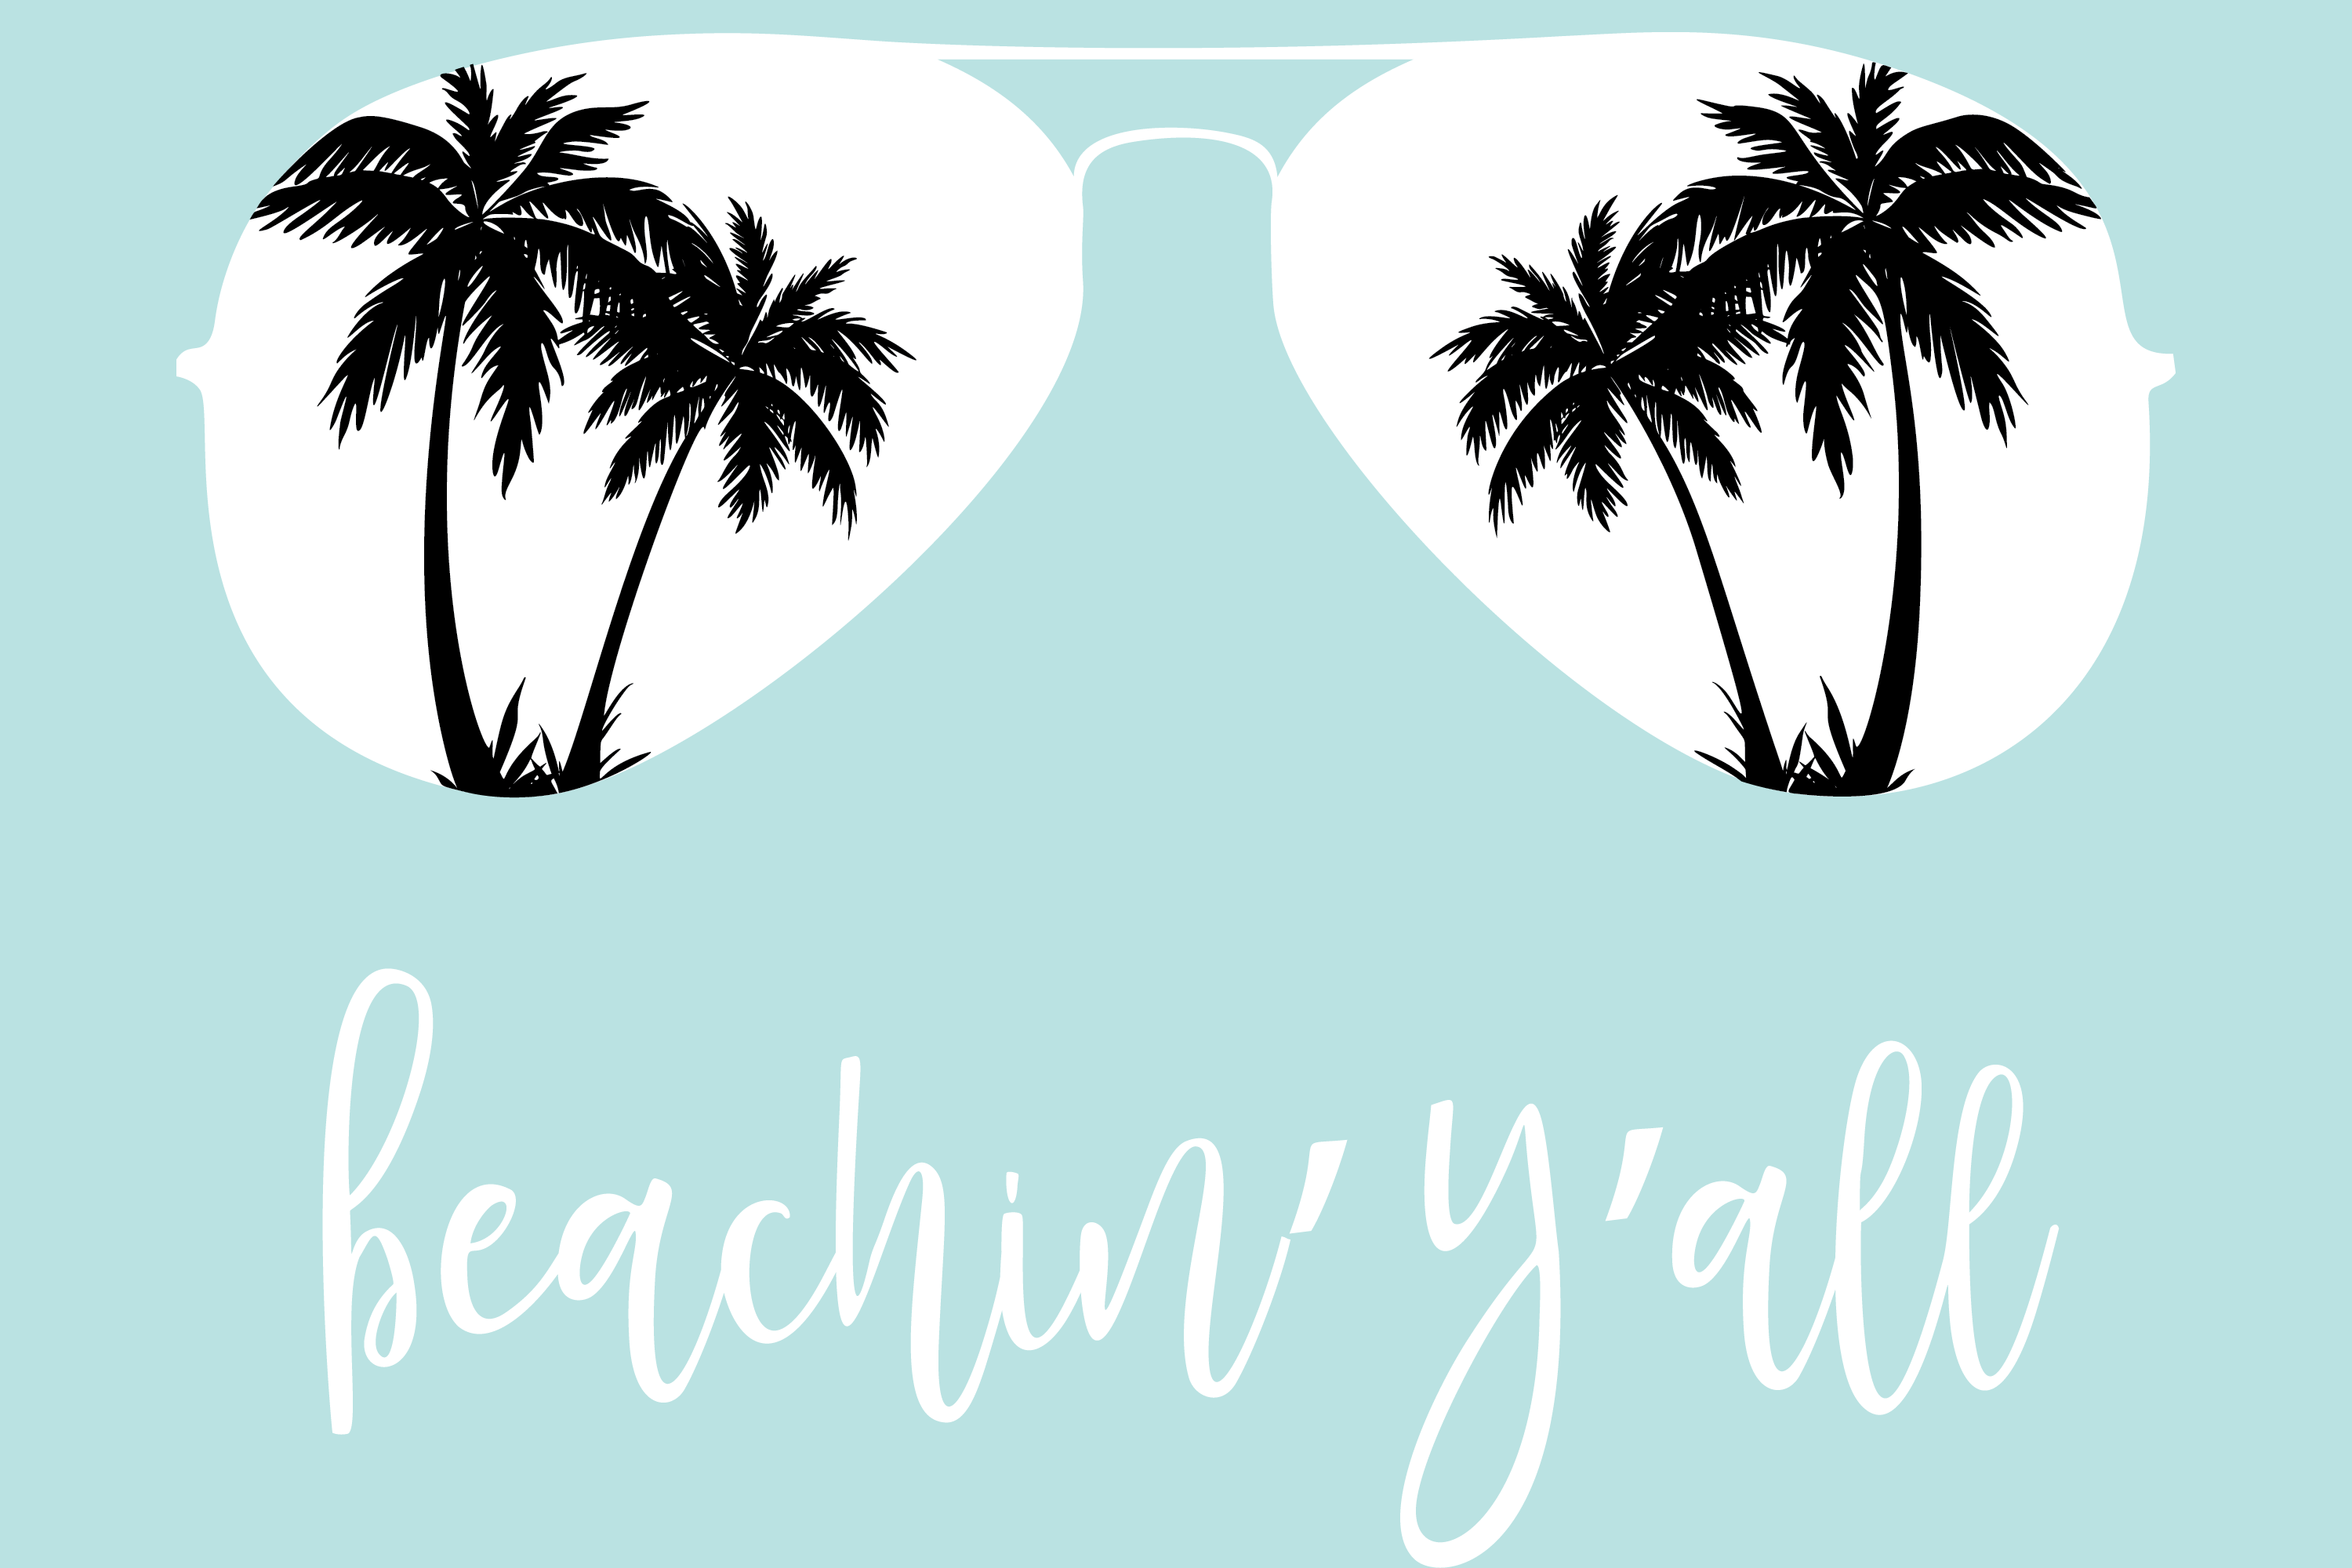 Download Free Beachin Y All Beach Sunglasses Graphic By Am Digital Designs for Cricut Explore, Silhouette and other cutting machines.